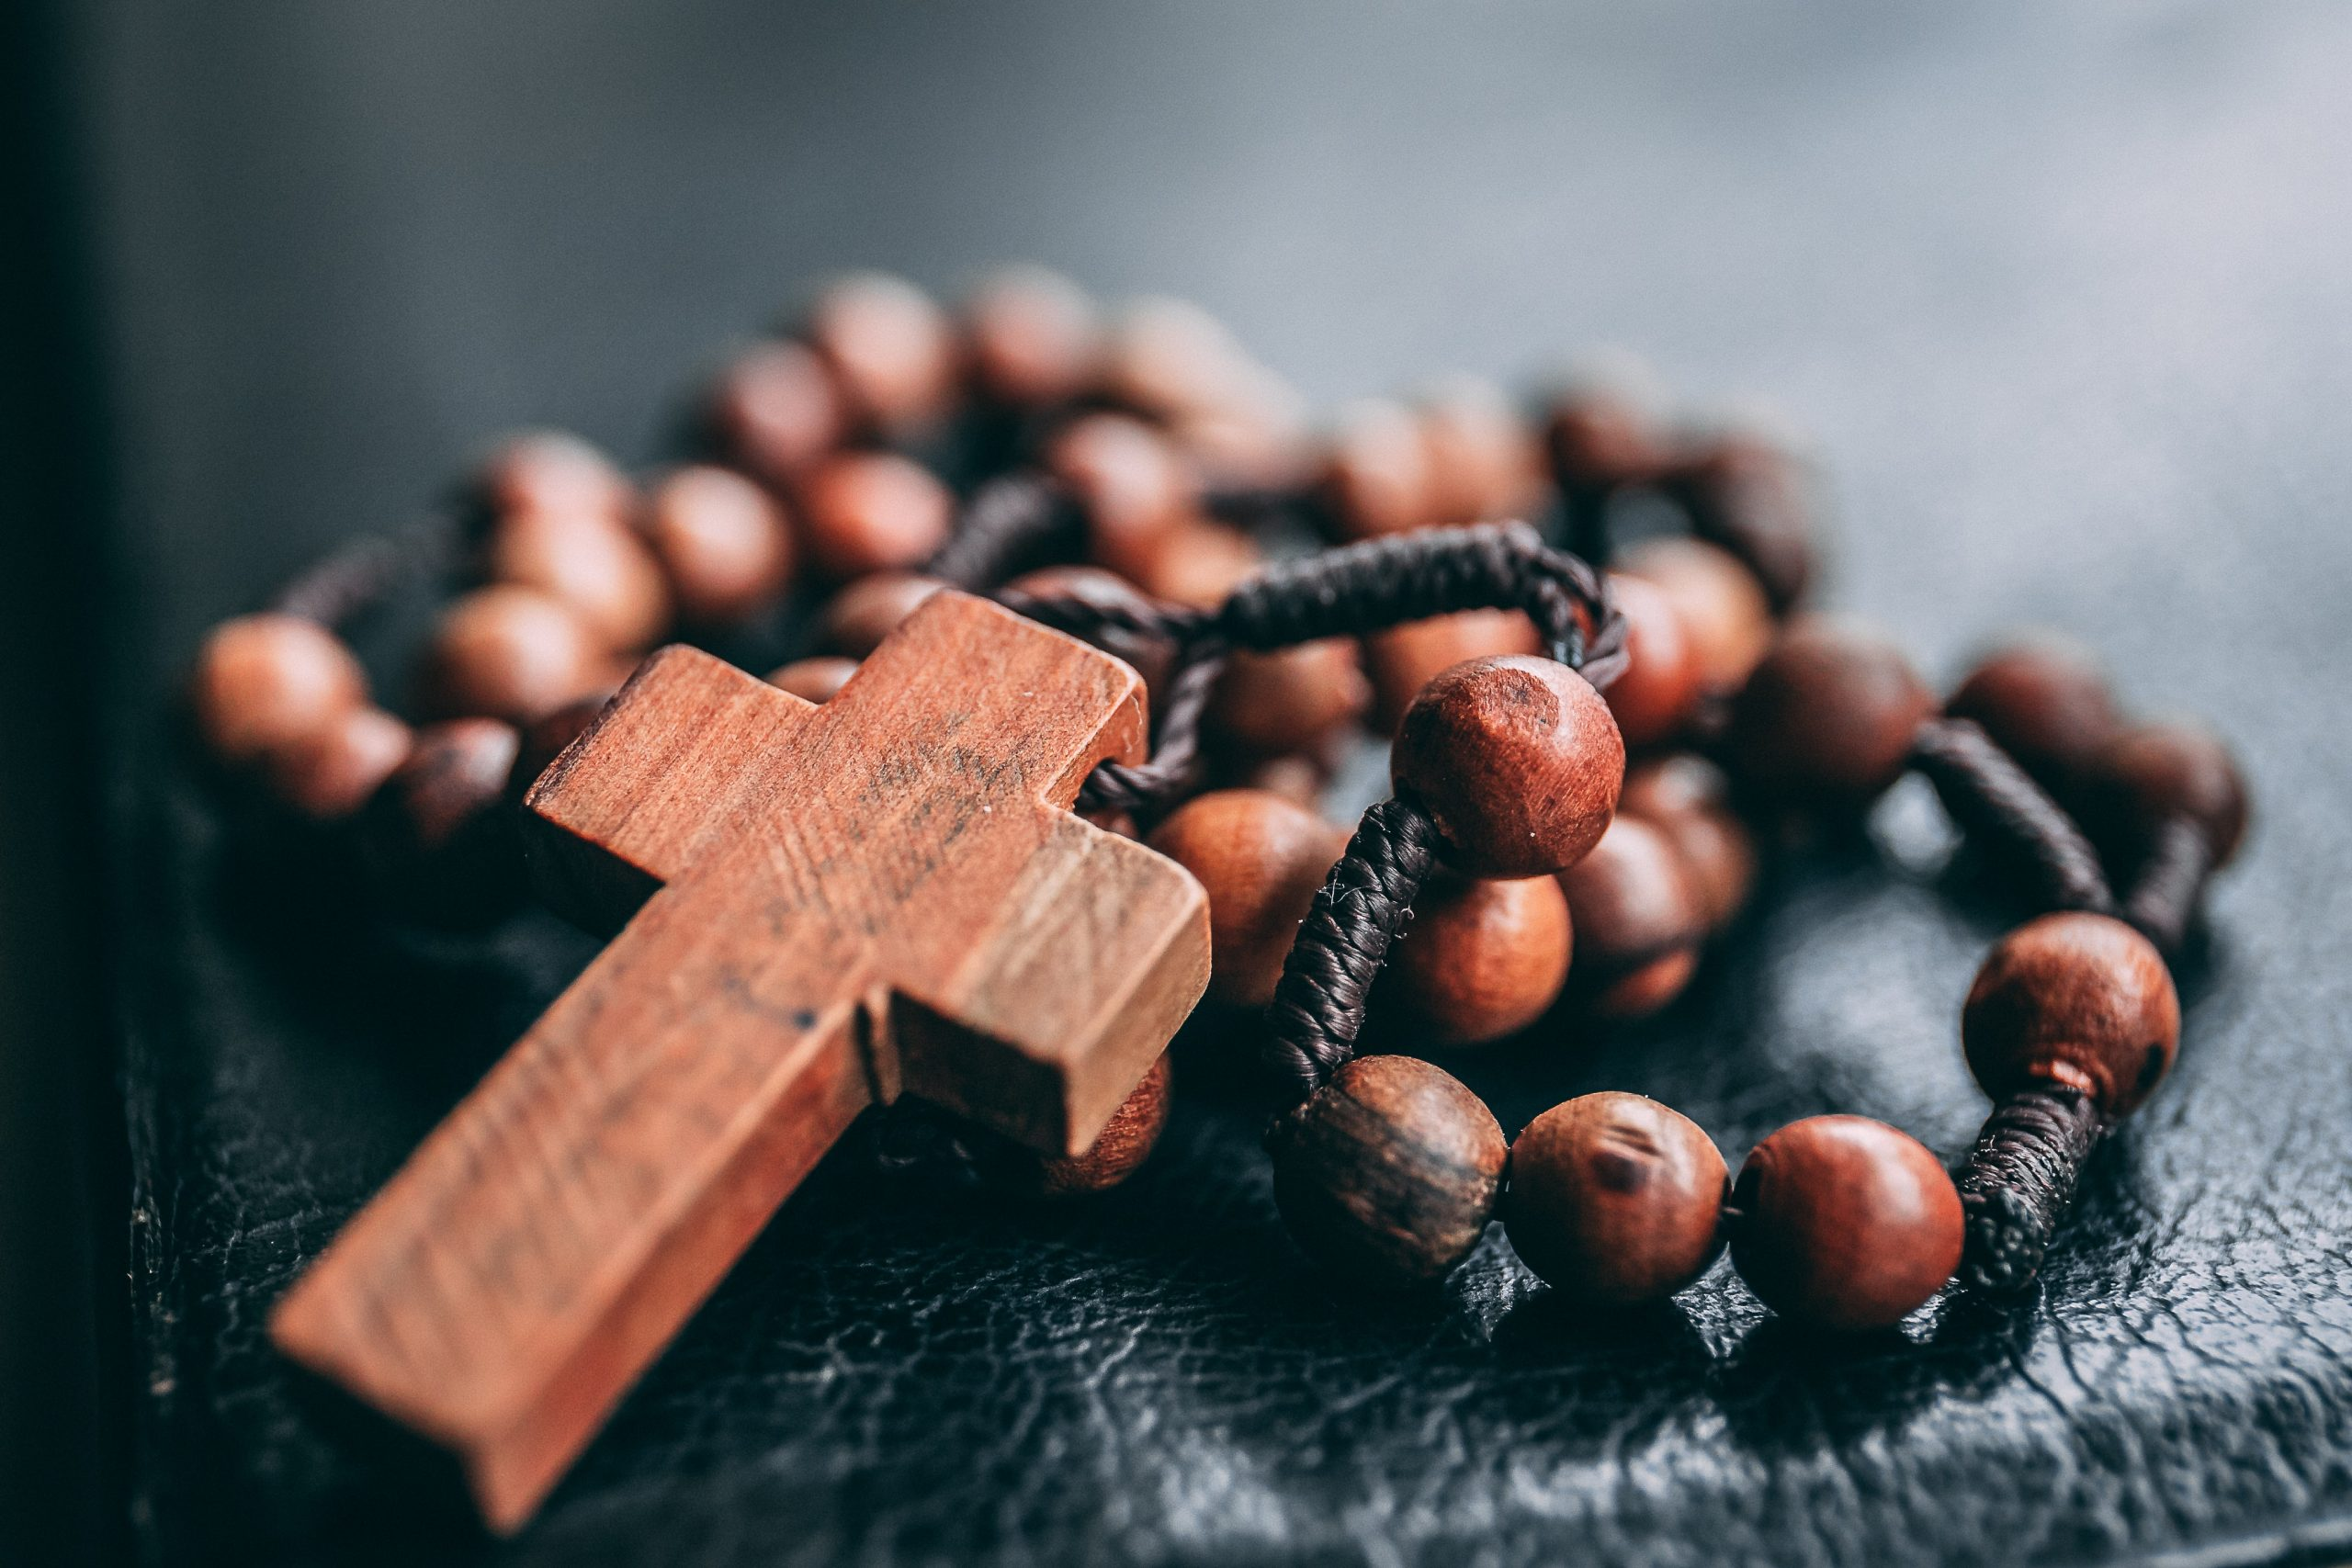 Upclose photo of a rosary